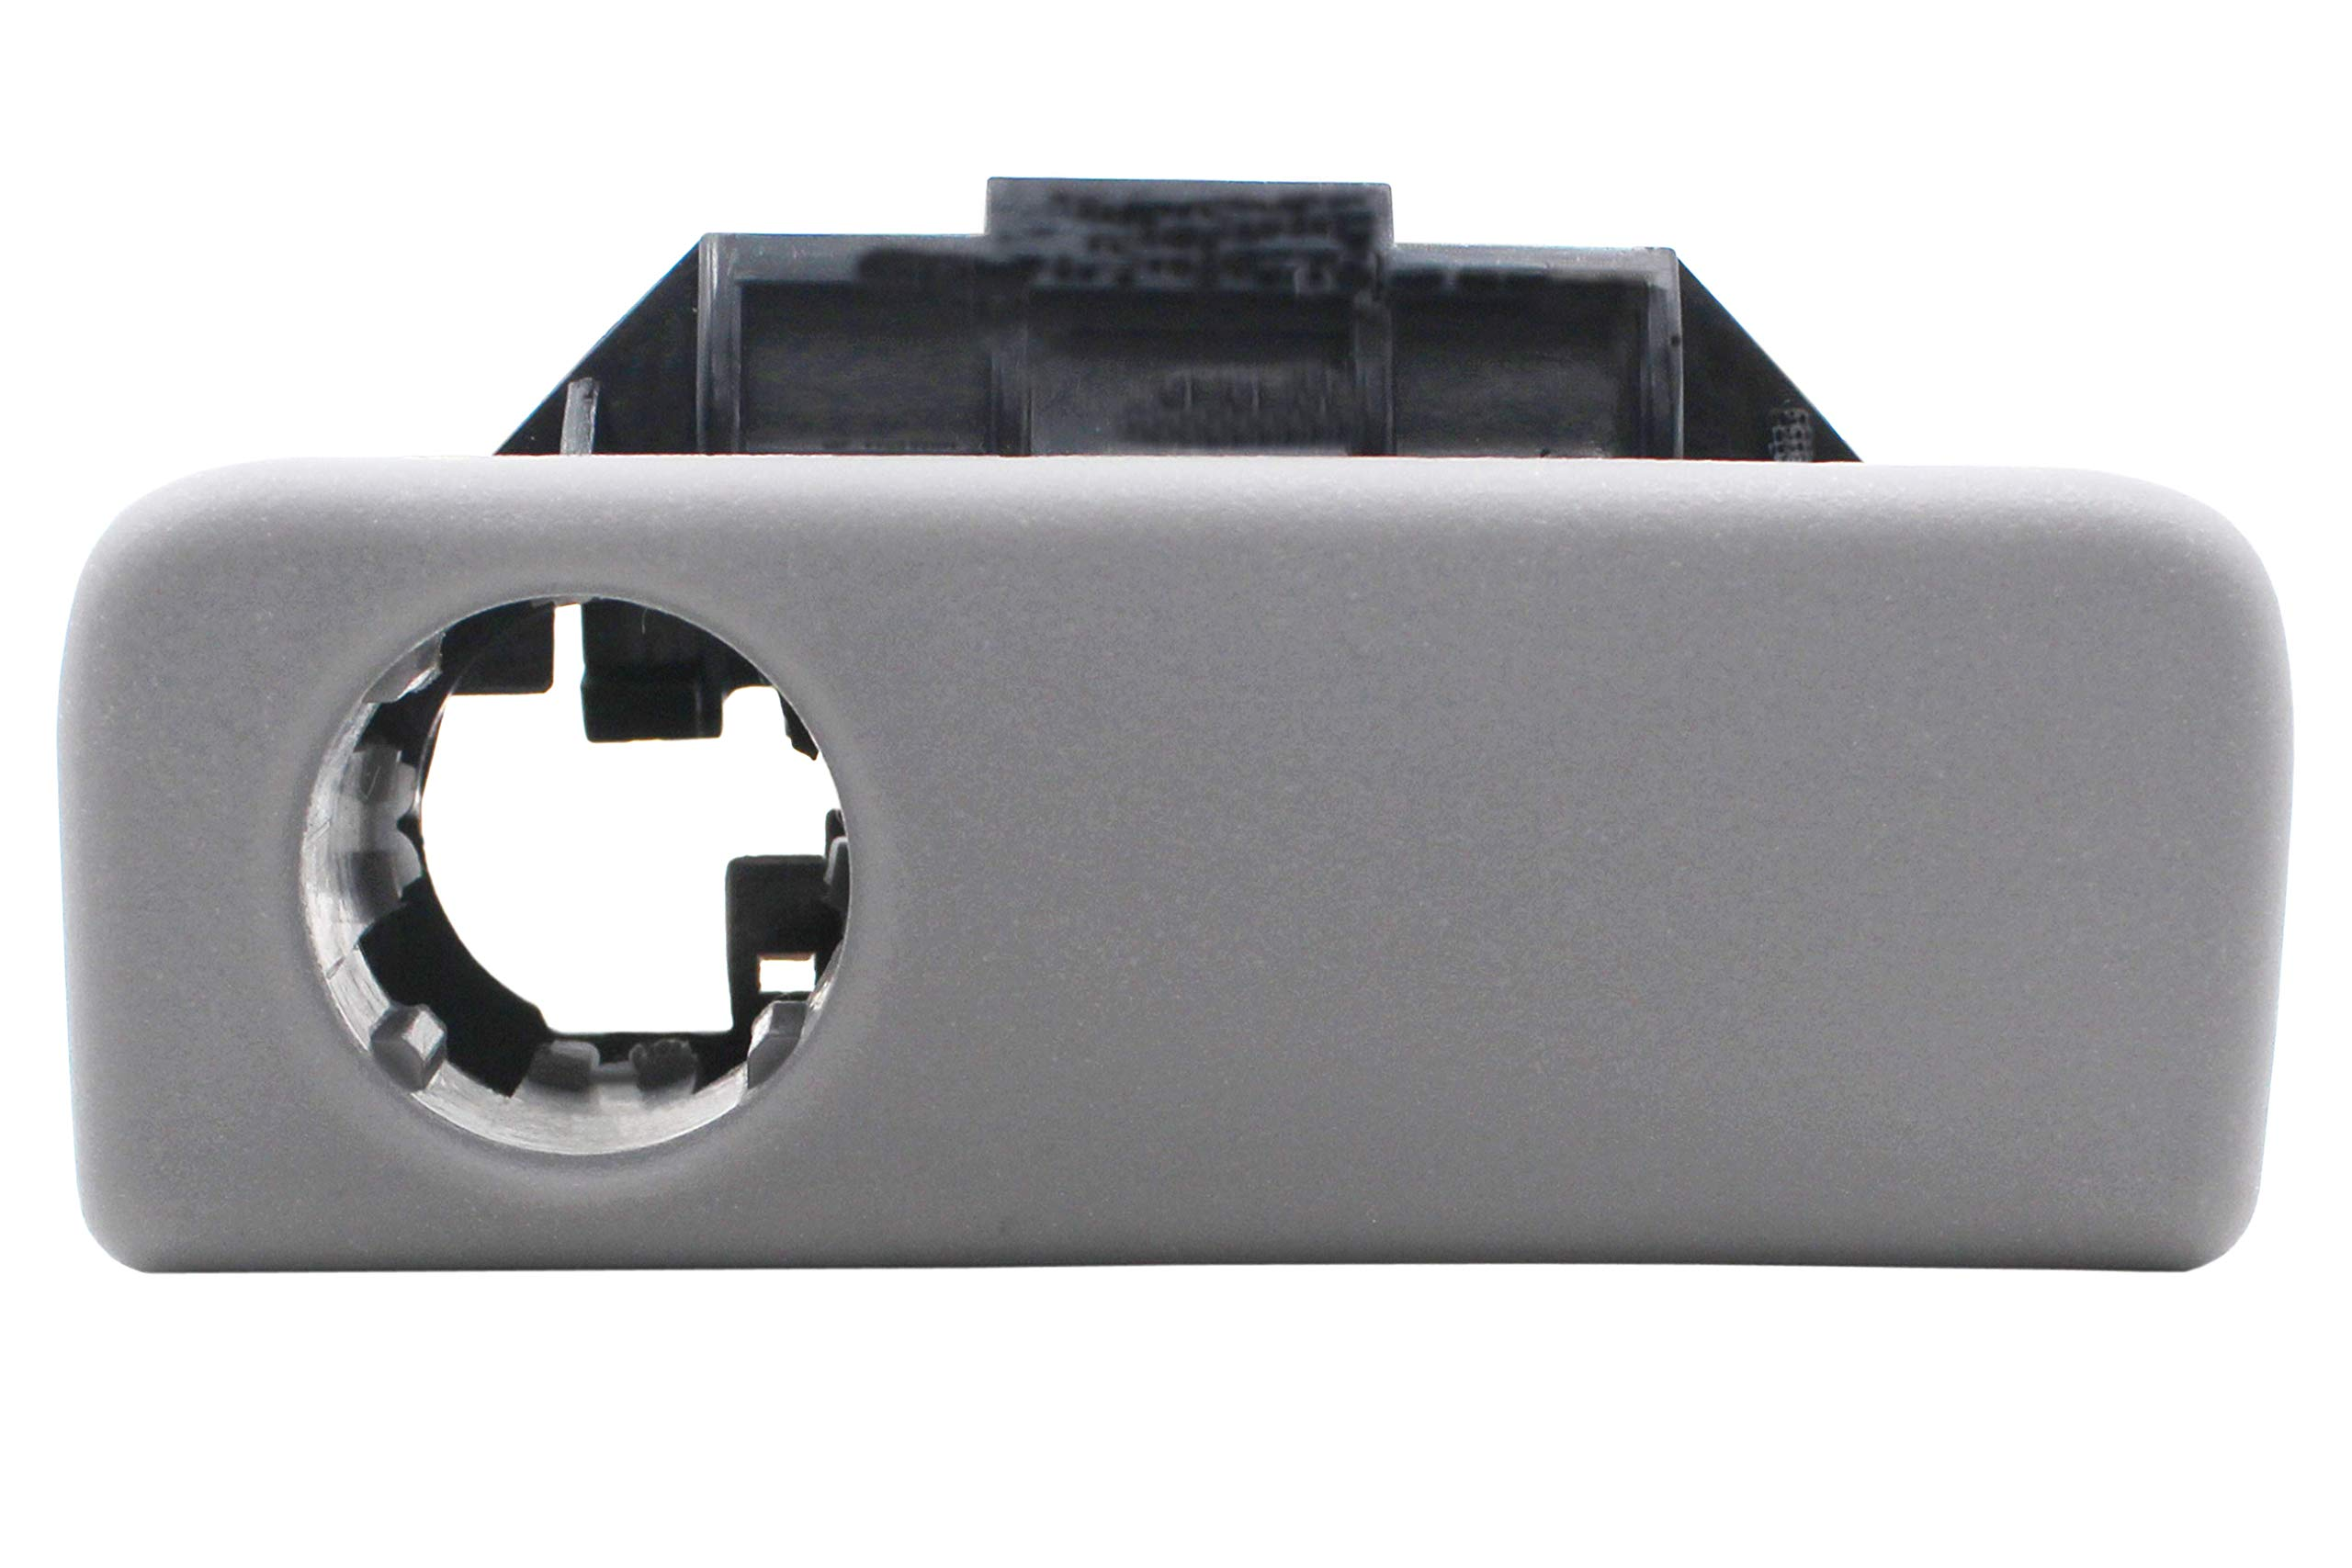 Replace for Toyota 55506-AE010-B0 Glove Compartment Box Lock Latch Handle Sub-Assembly Glove Box Lock Compartment Door Latch Assembly Fits for 2004-2010 Toyota Sienna Vehicles Stone Grey Color by State Warehouse